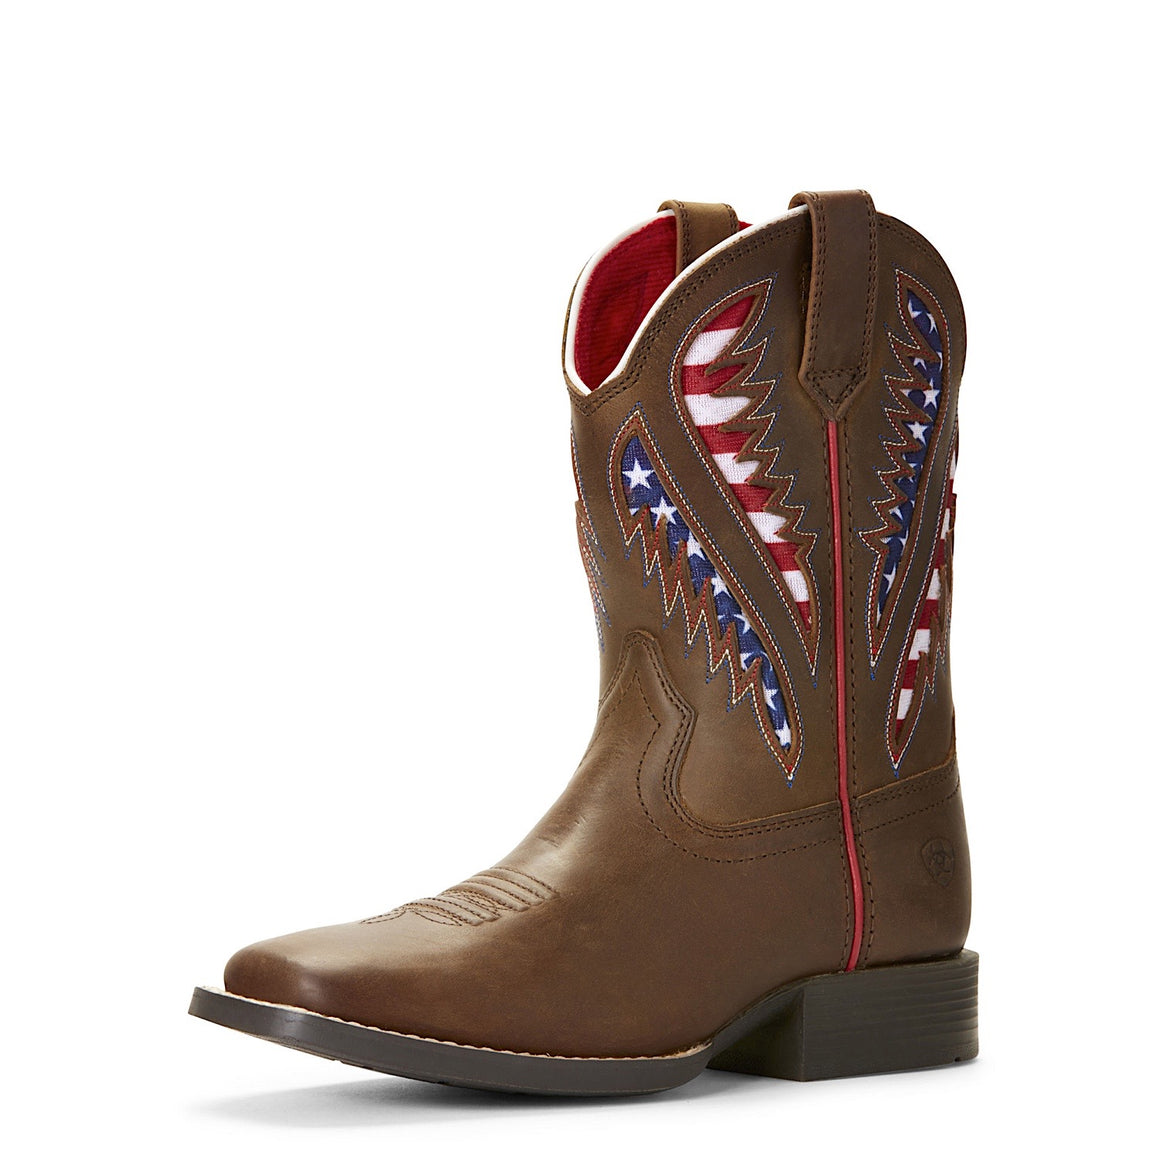 34b2ac8268c4 Buy Ariat Kids Boots - Discount Prices   Australia-Wide Delivery ...